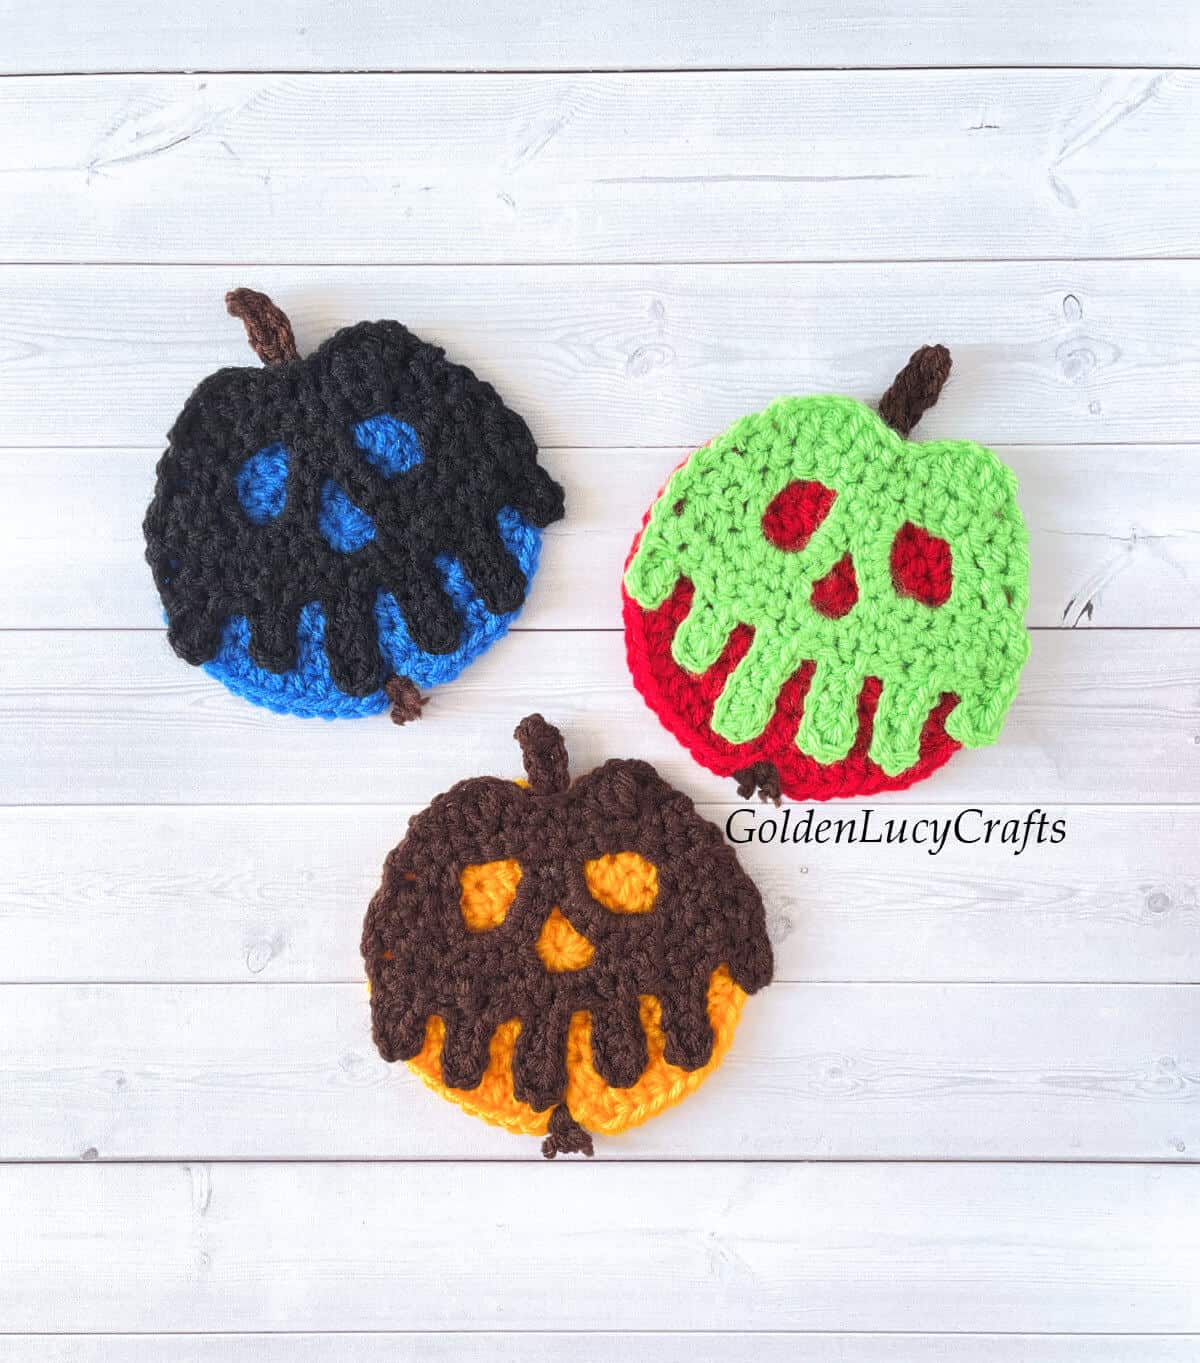 Three crocheted poisoned apples in different colors.